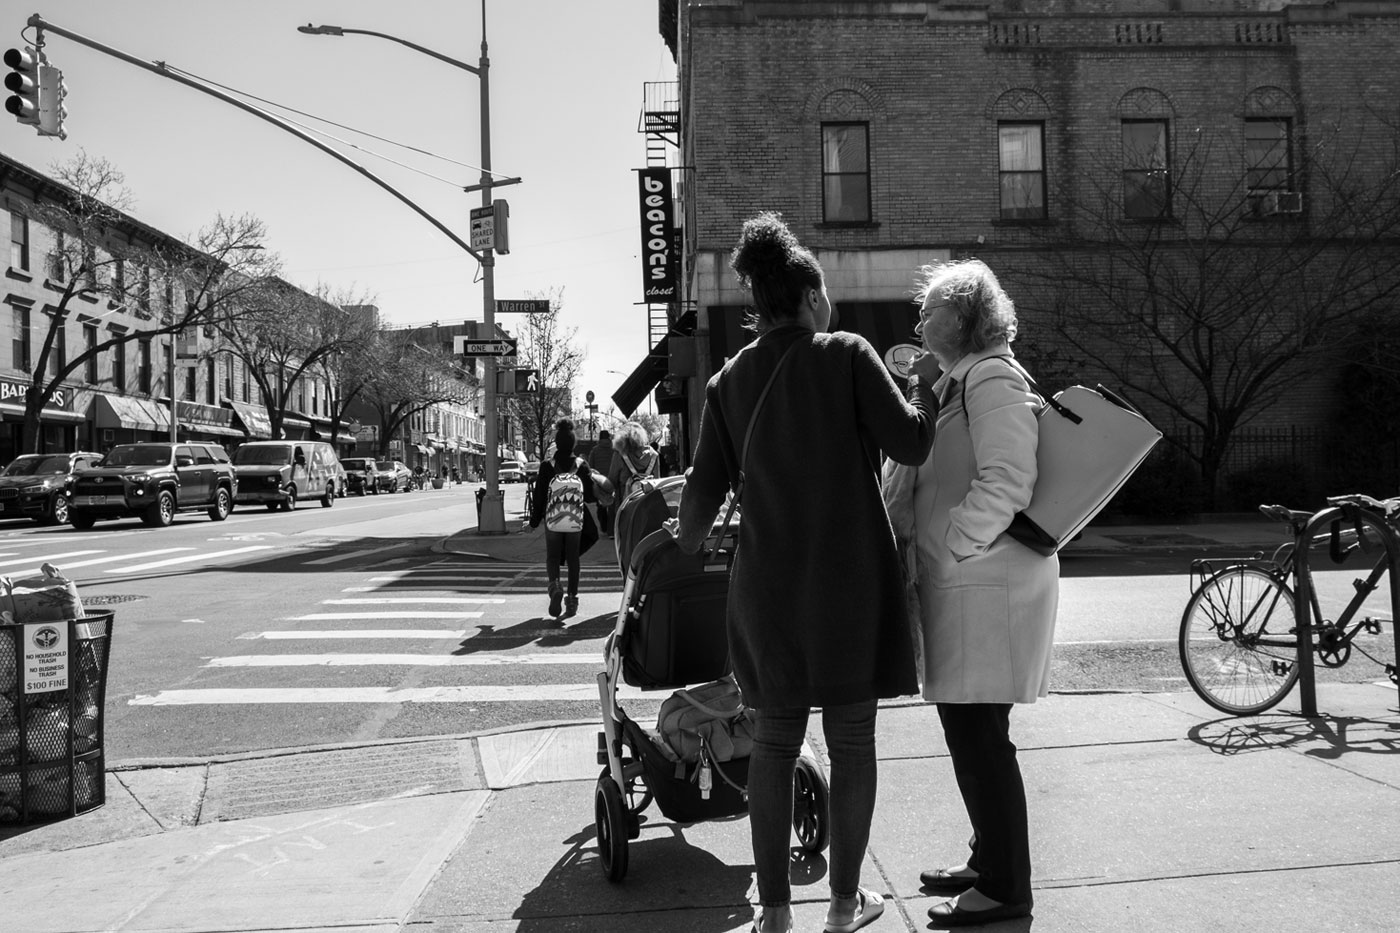 two women talking at a crosswalk